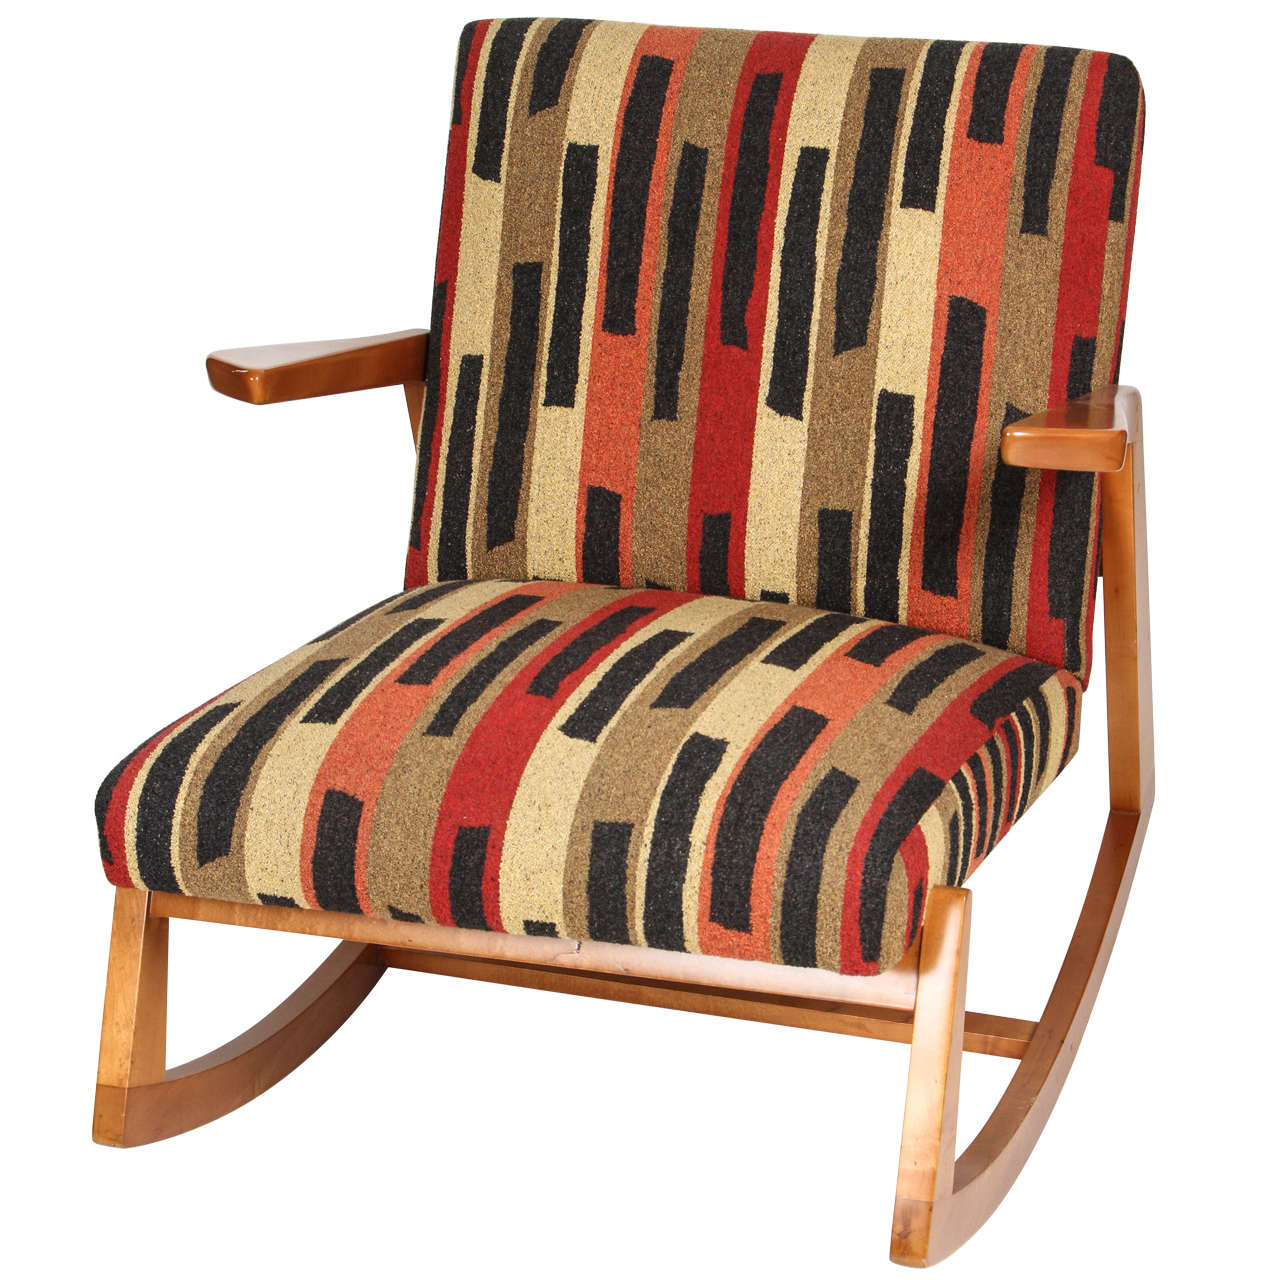 Ralph rapson rocking chair for knoll associates at 1stdibs - Knoll rocking chair ...